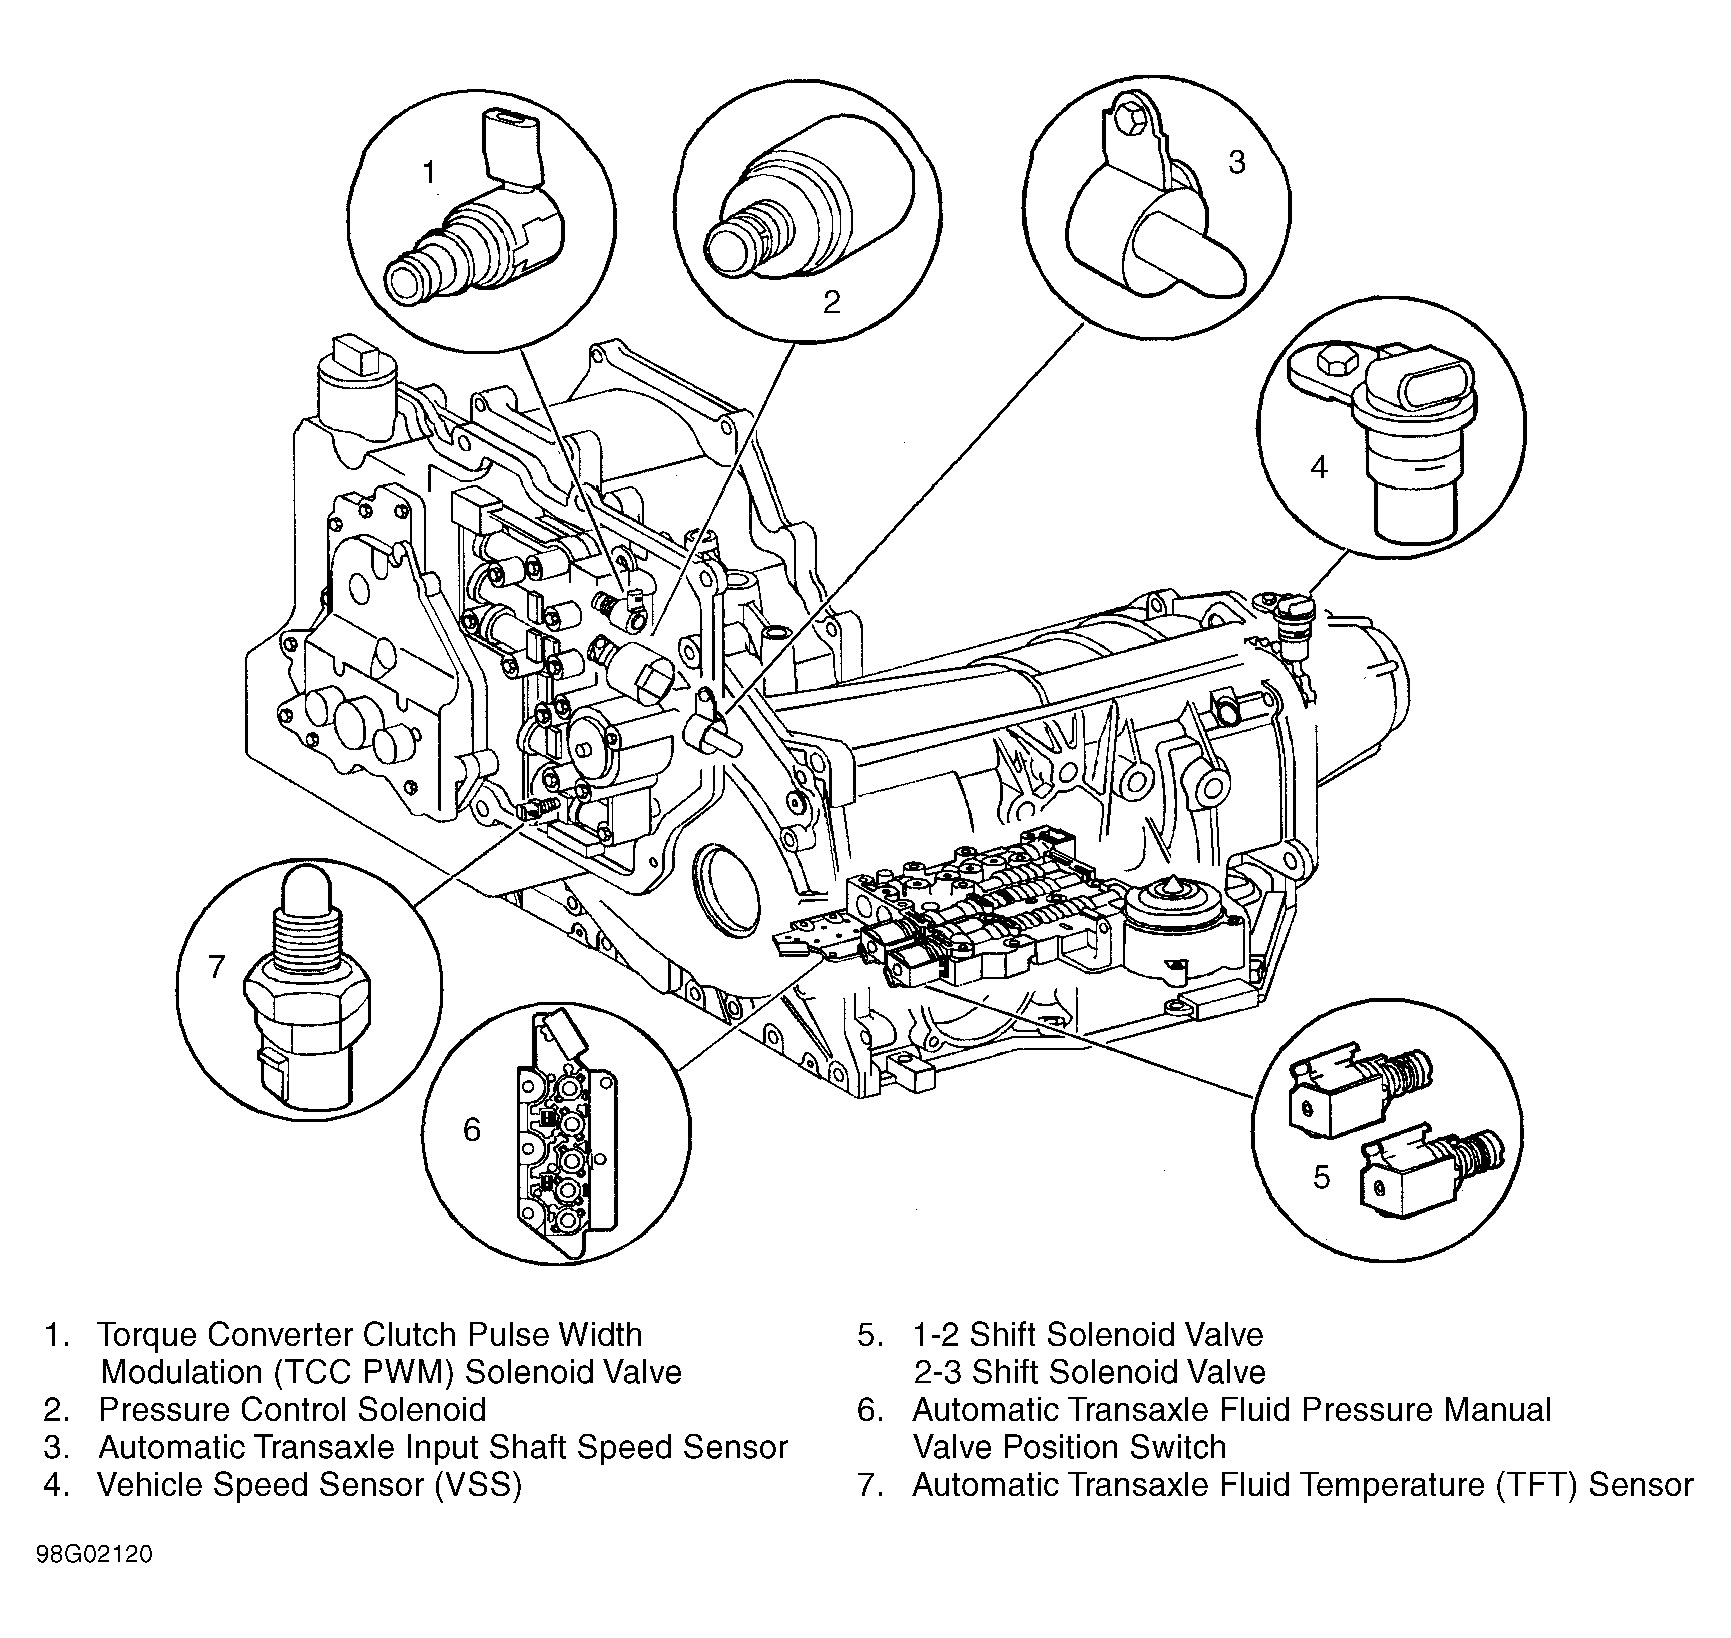 7400 International Truck Parts Diagram. Diagram. Auto